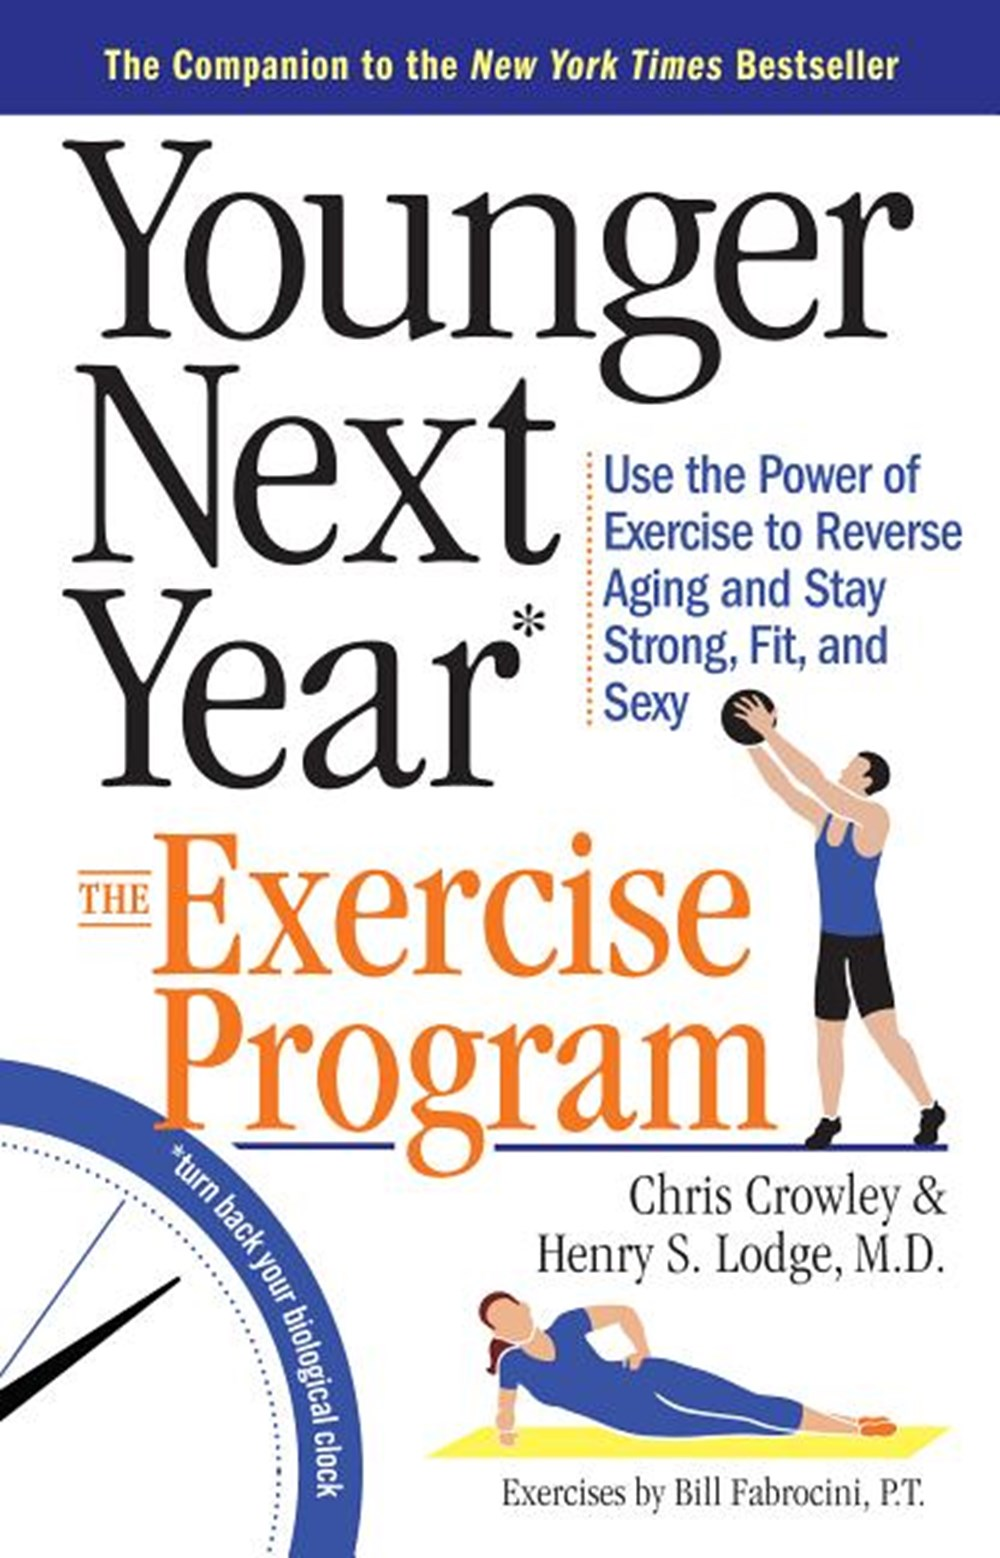 Younger Next Year The Exercise Program: Use the Power of Exercise to Reverse Aging and Stay Strong,